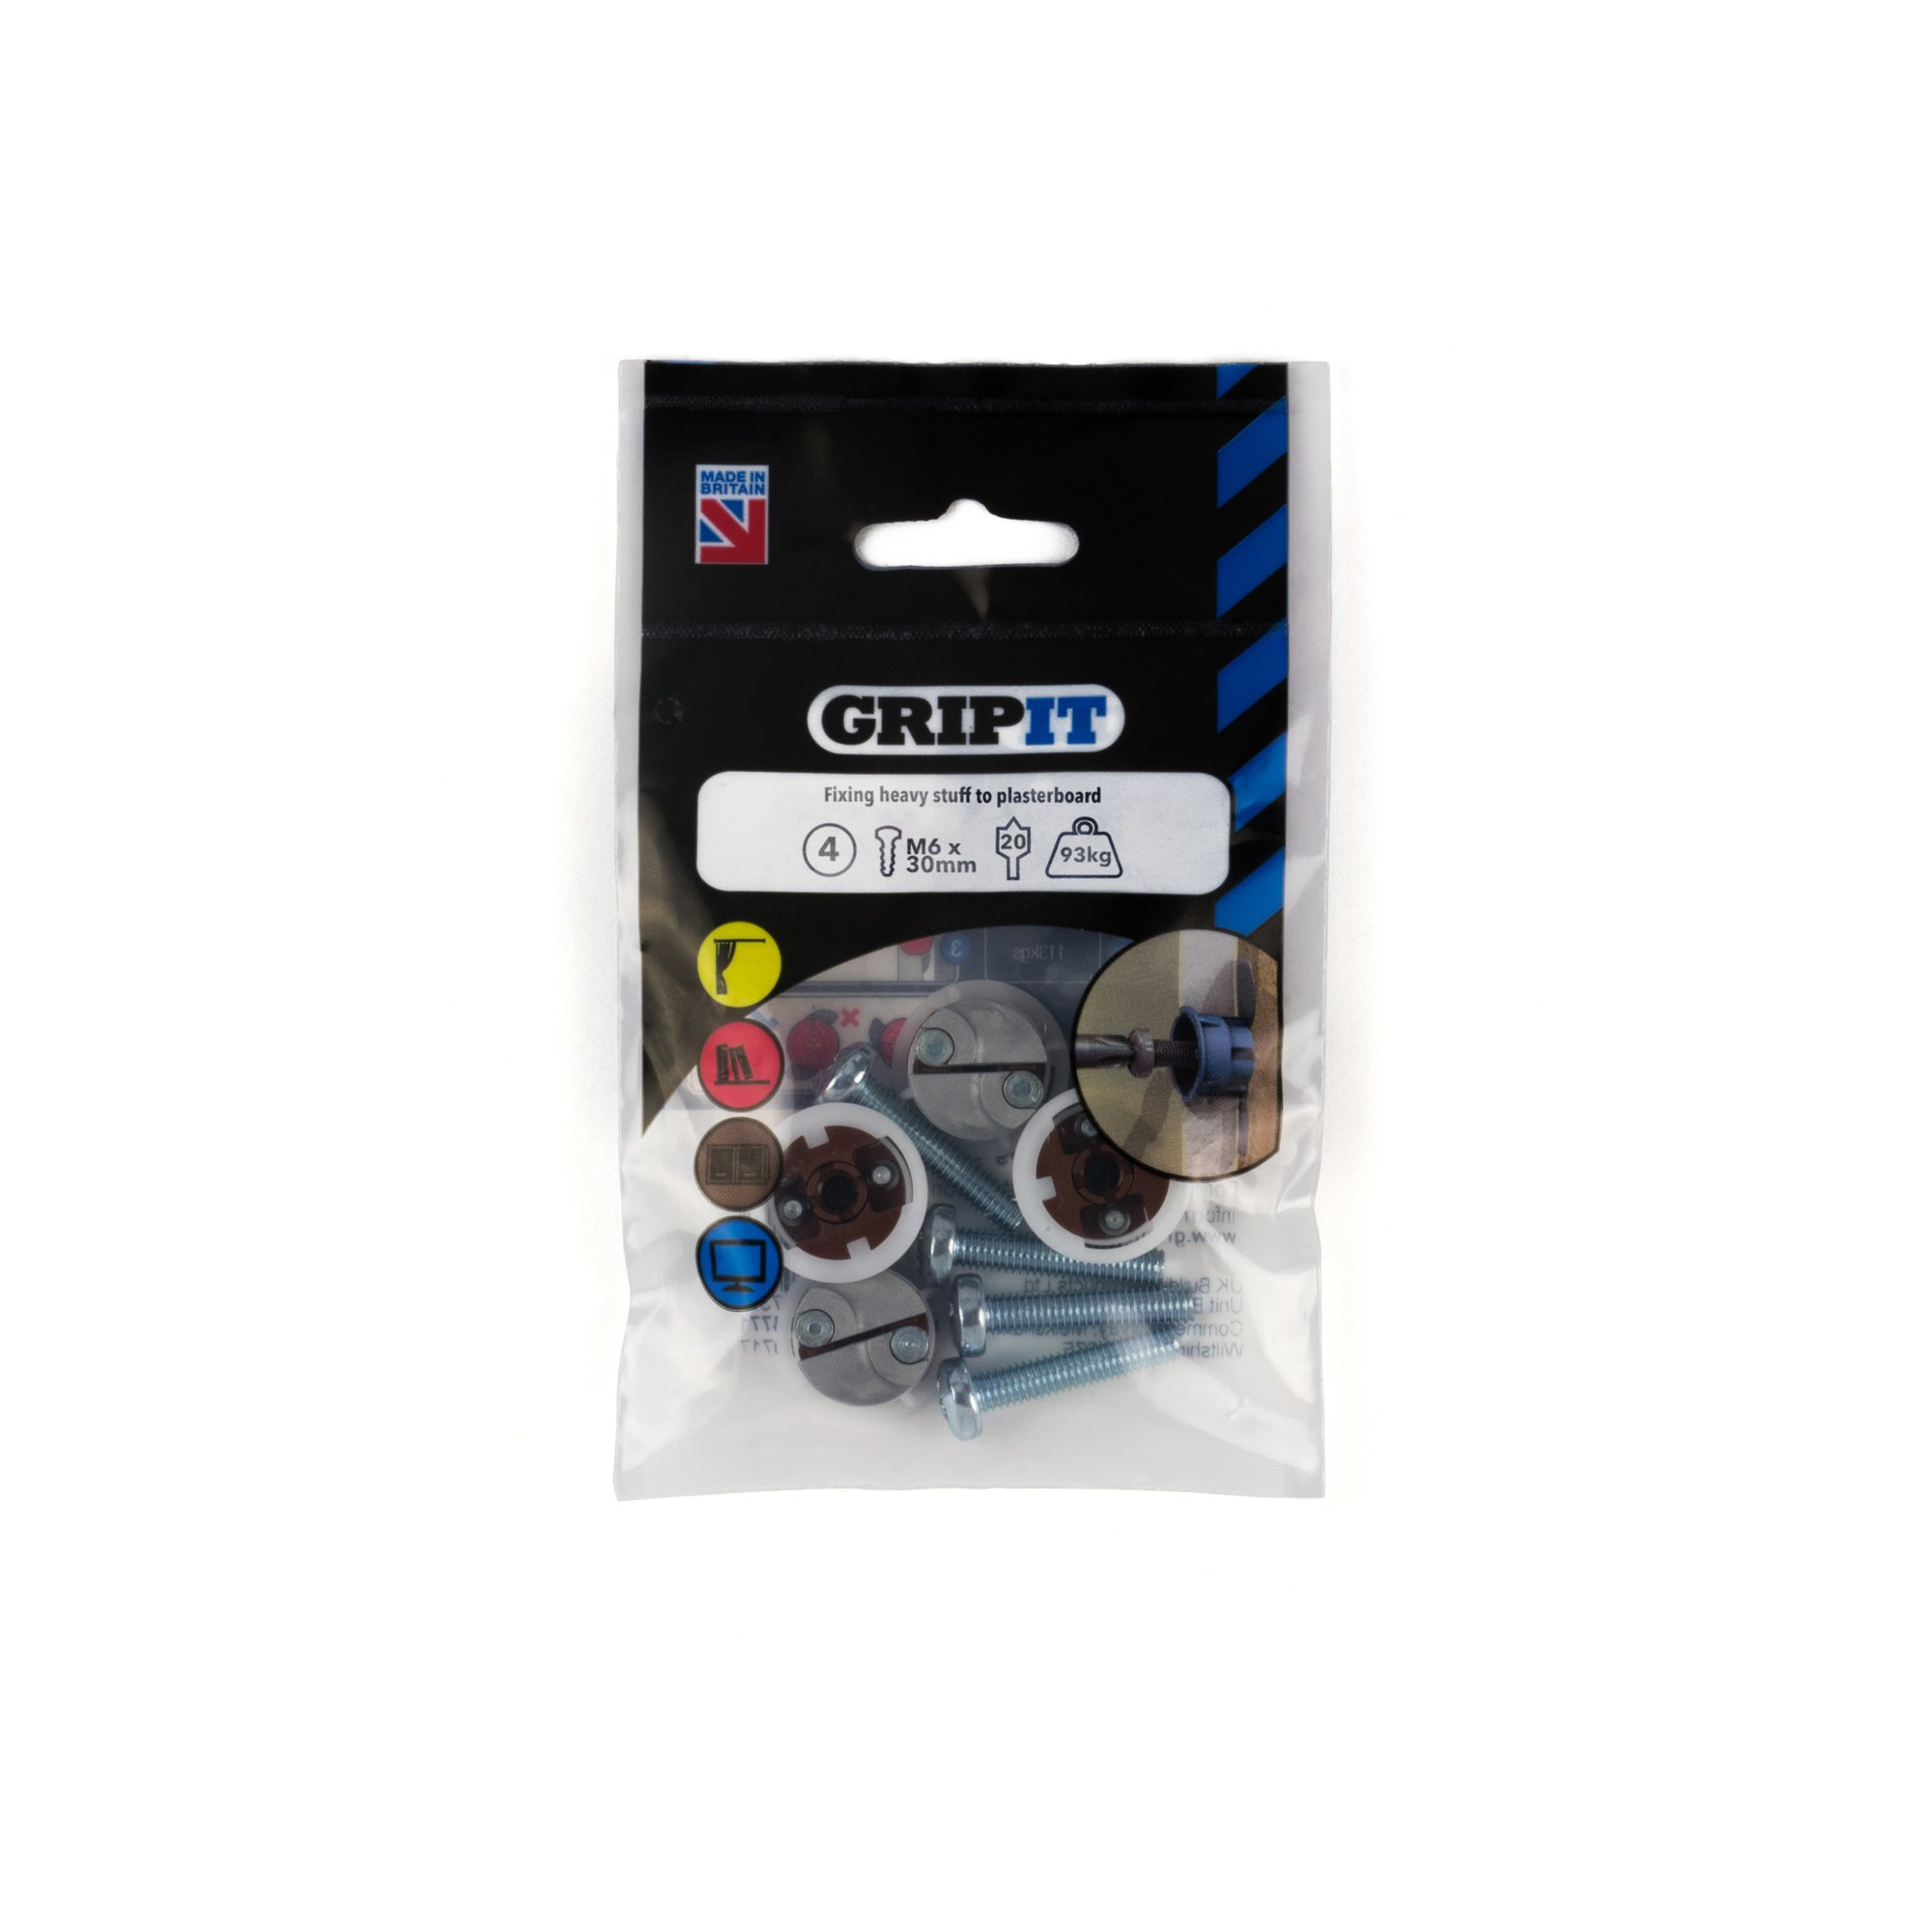 GRIPIT FIXINGS - BROWN 20MM FIXING PACK - 202-304 - PK4